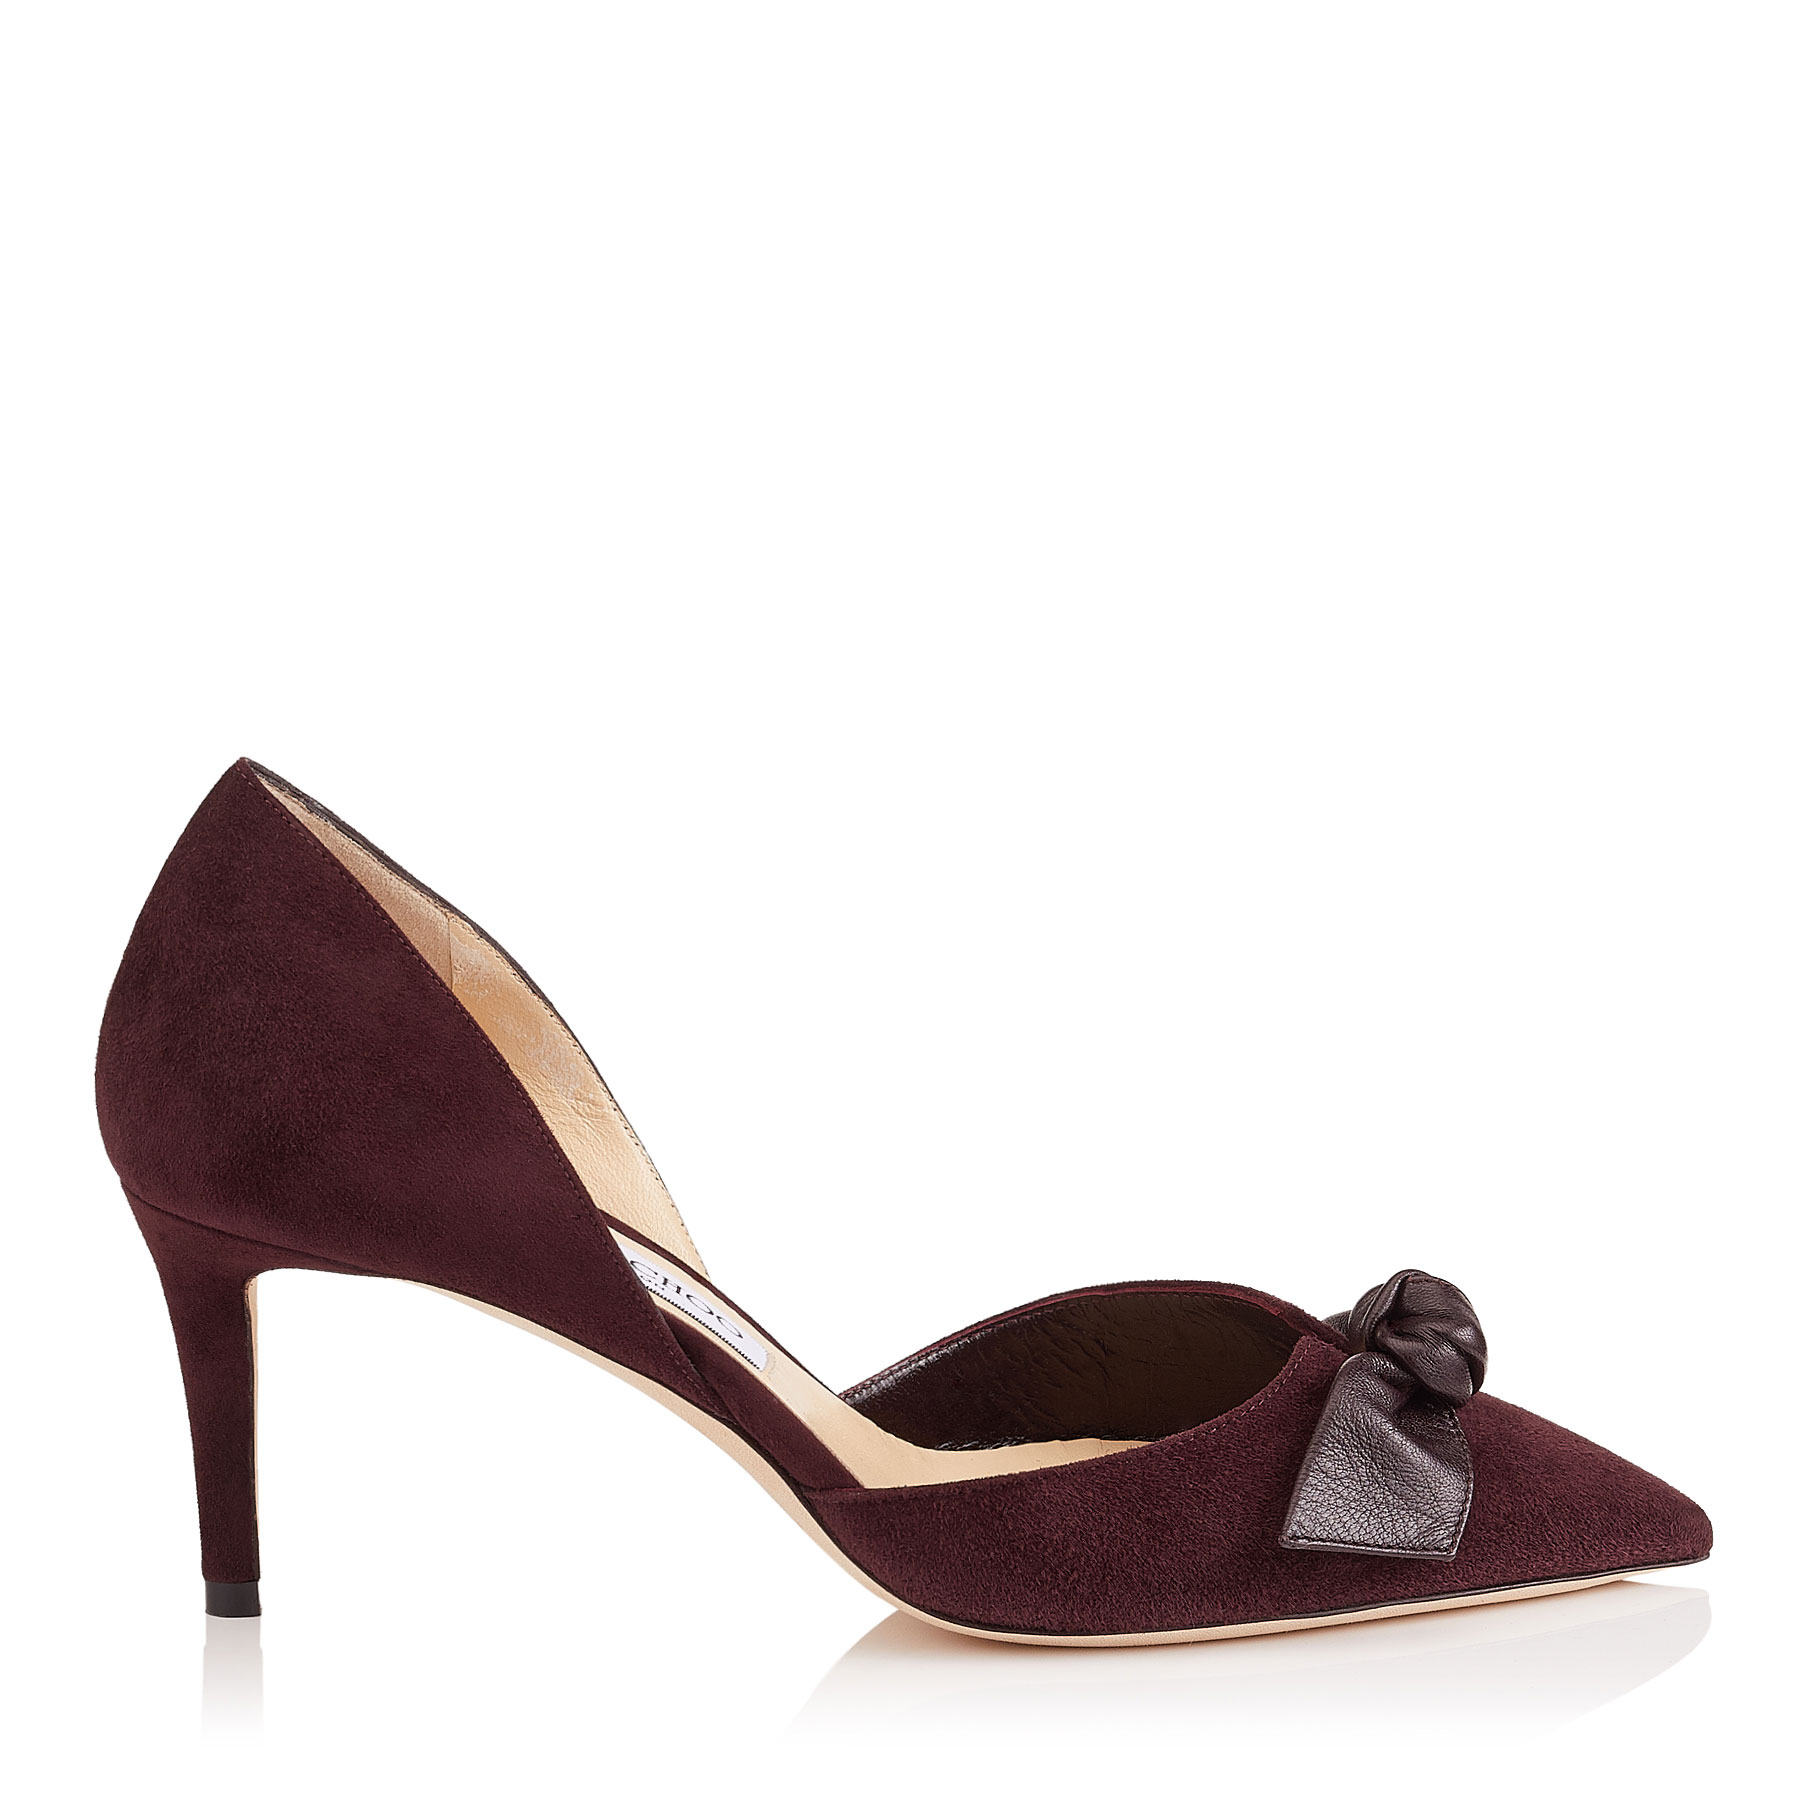 TWINKLE 65 Burgundy Suede and Kid Leather Pointy Toe Pumps by Jimmy Choo